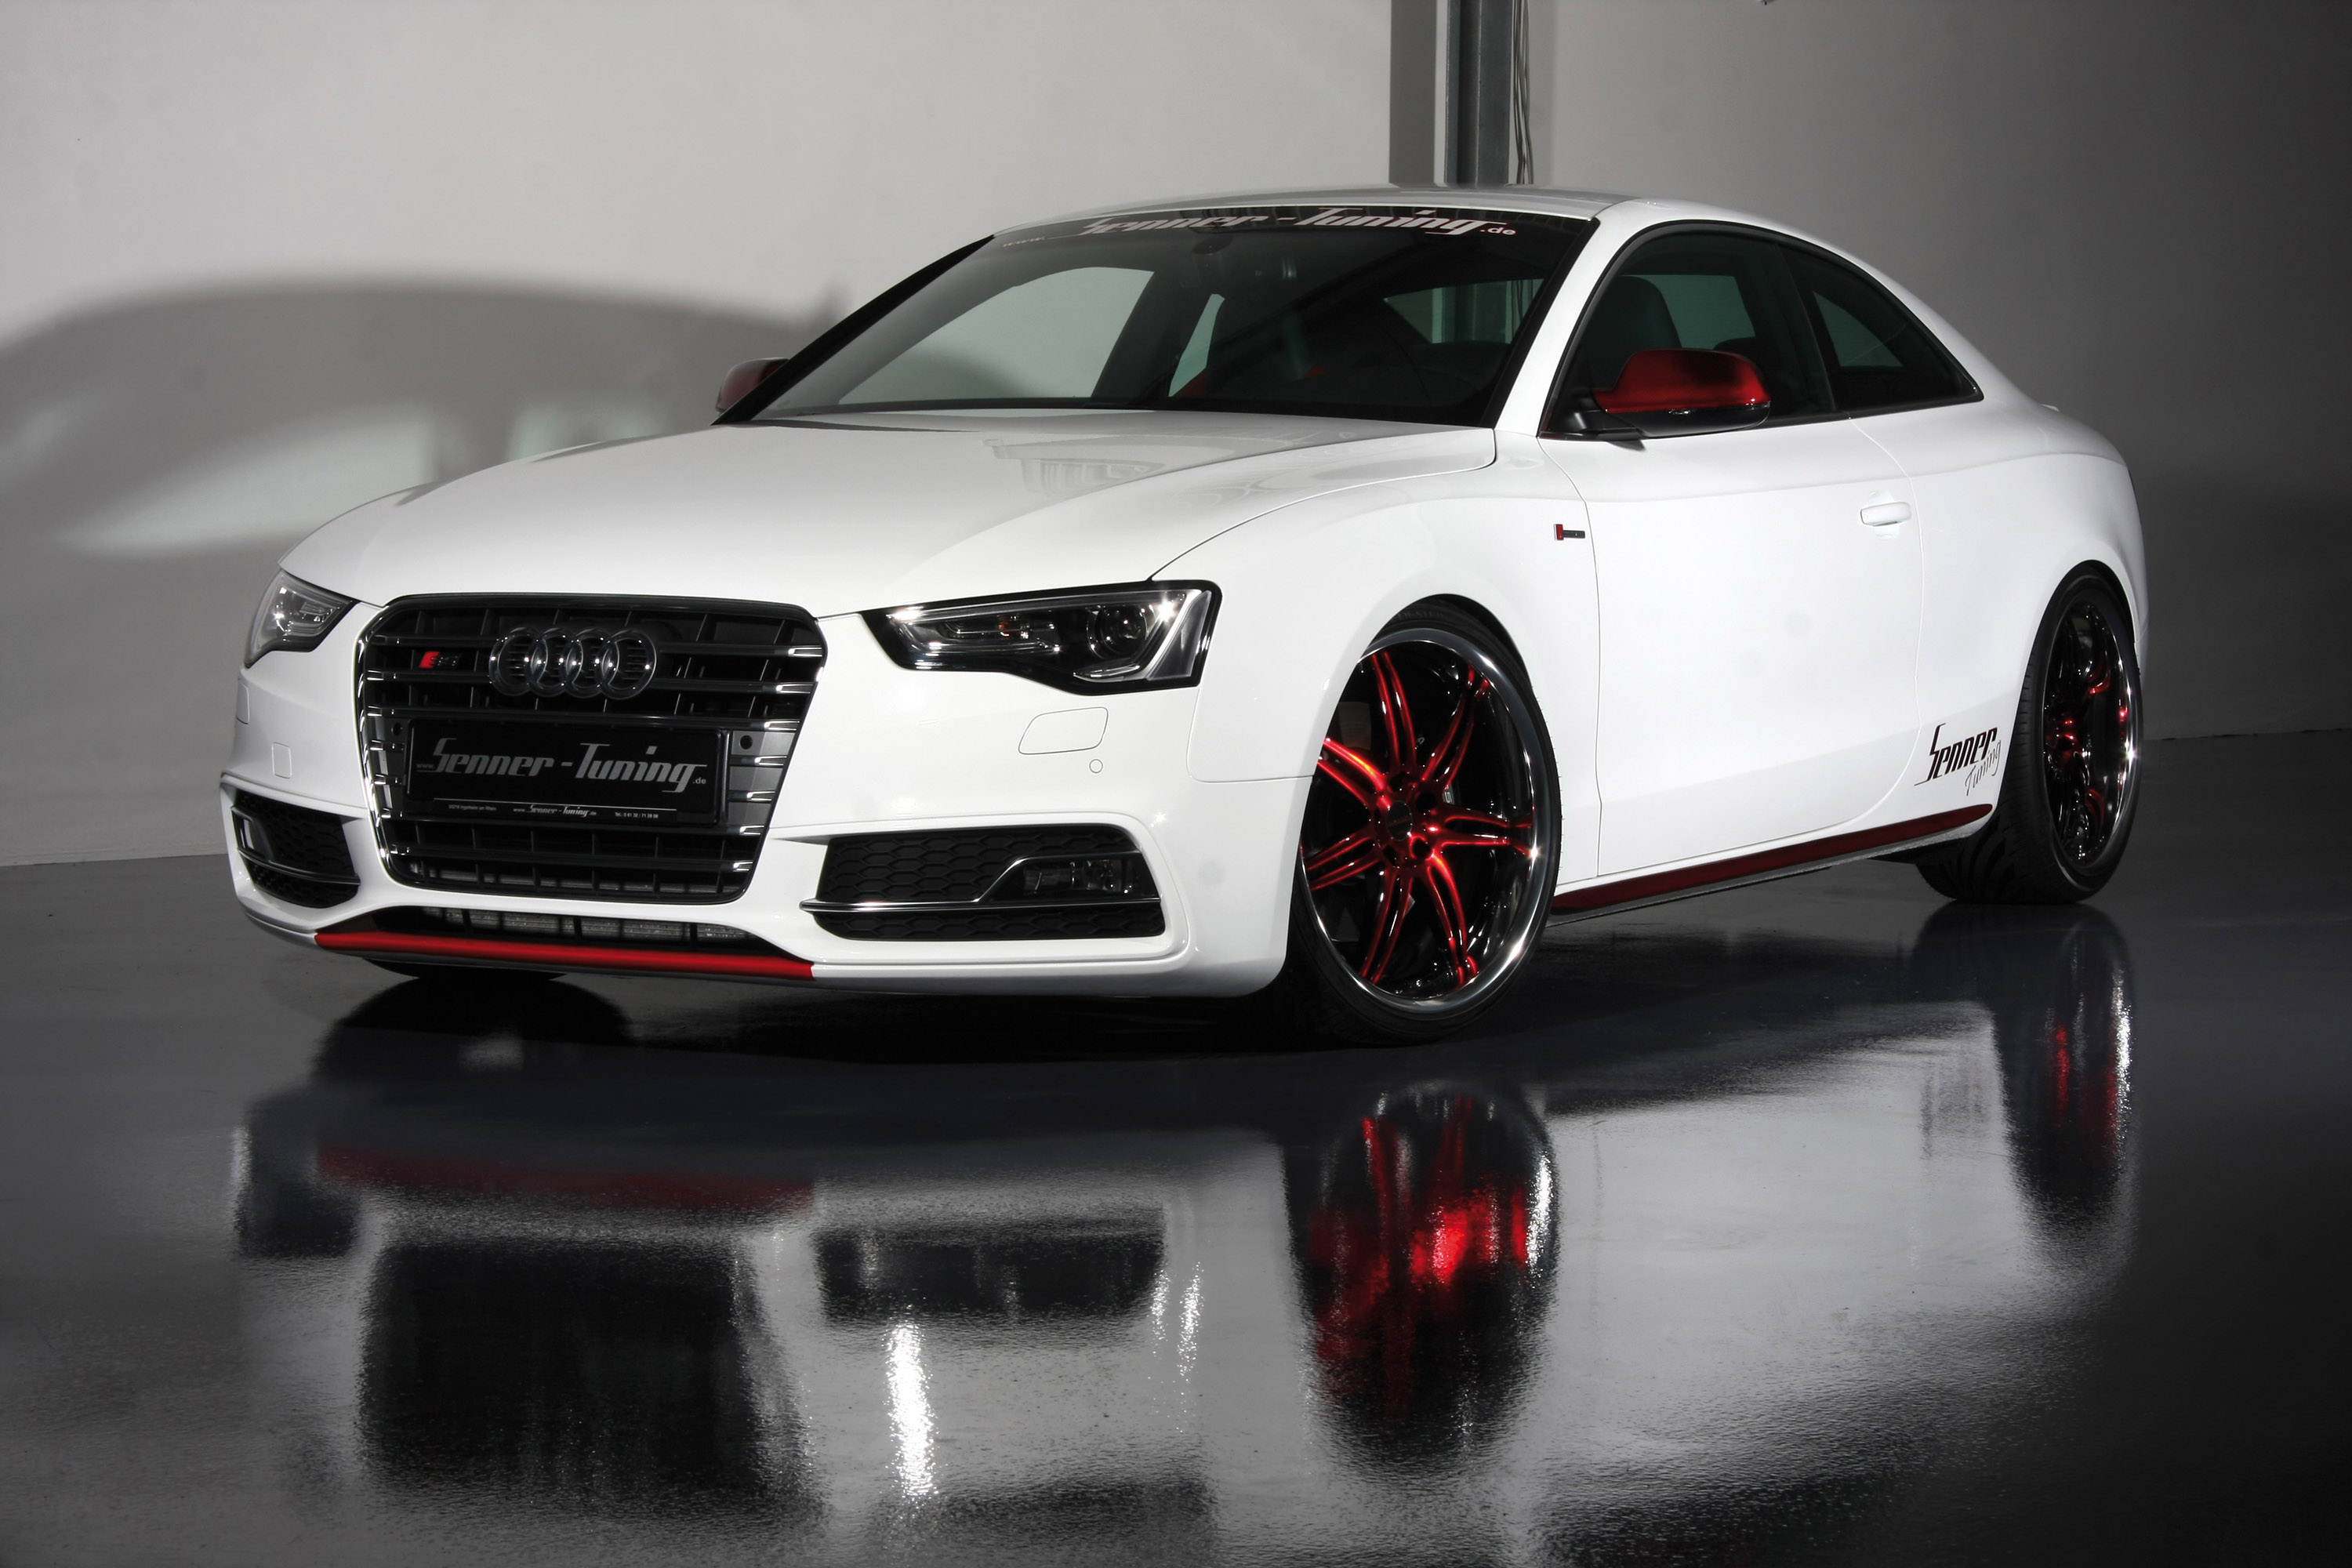 http://www.automobilesreview.com/img/senner-audi-s5-coupe/senner-audi-s5-coupe-01.jpg